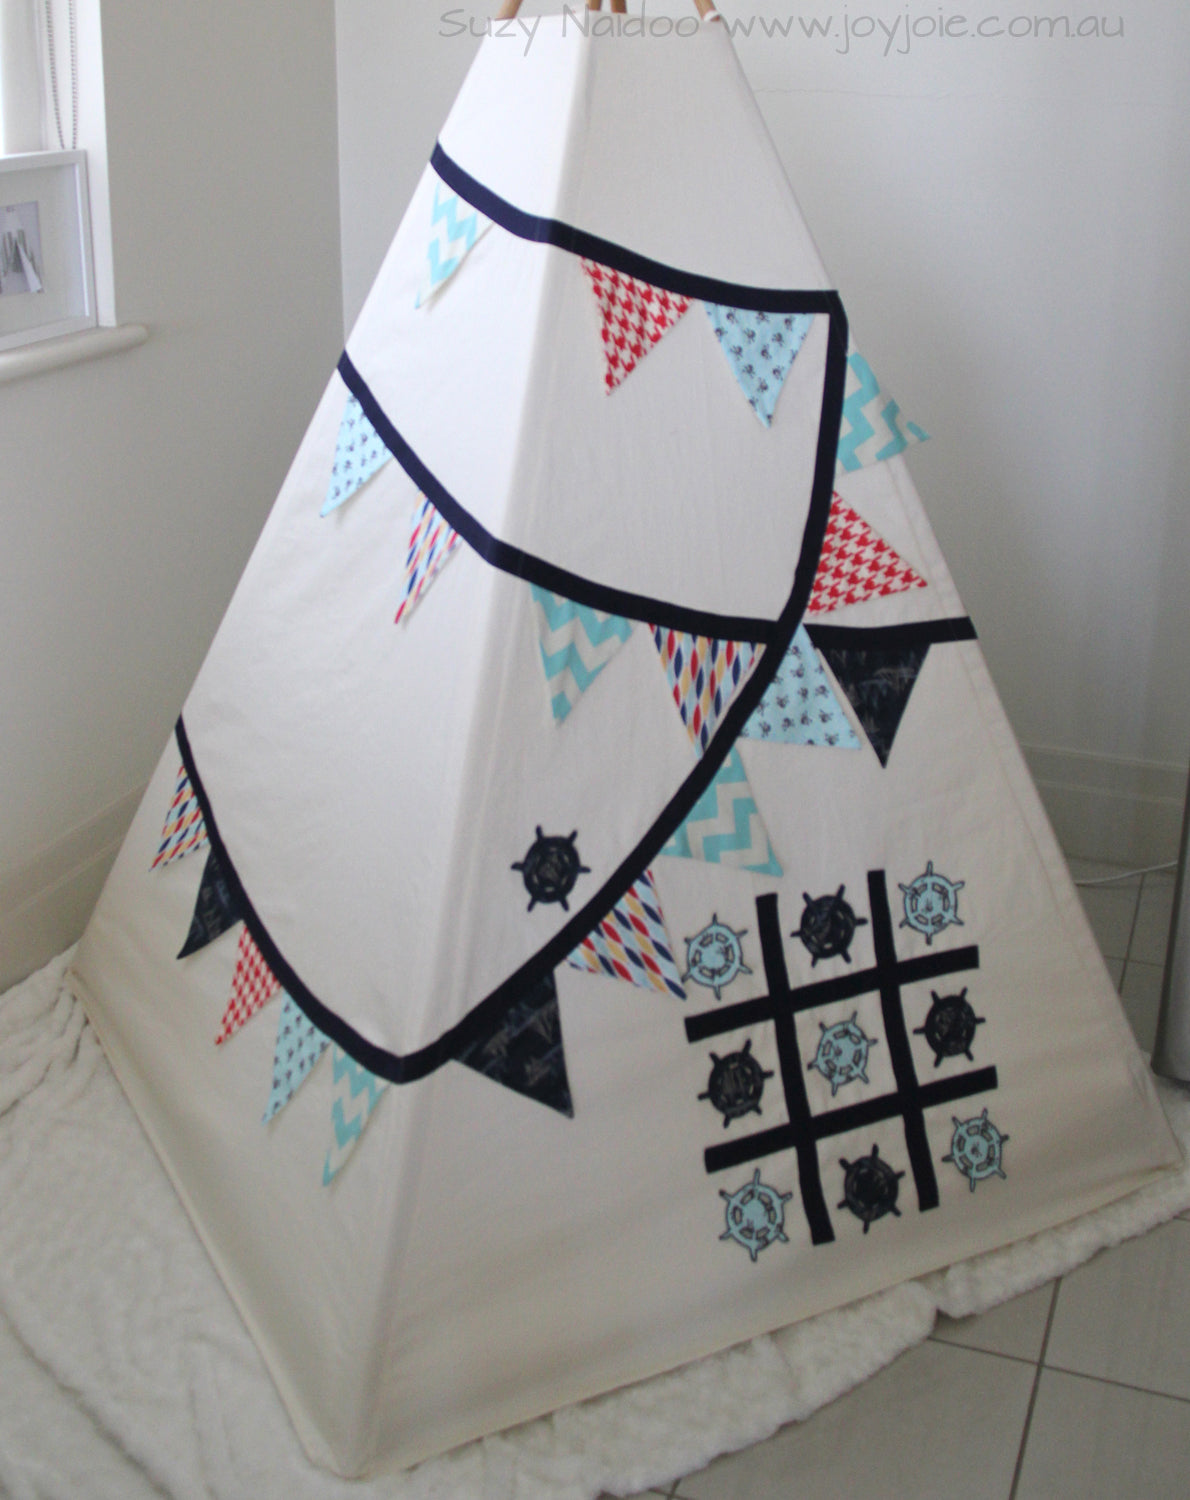 Pirate Inspired tepee